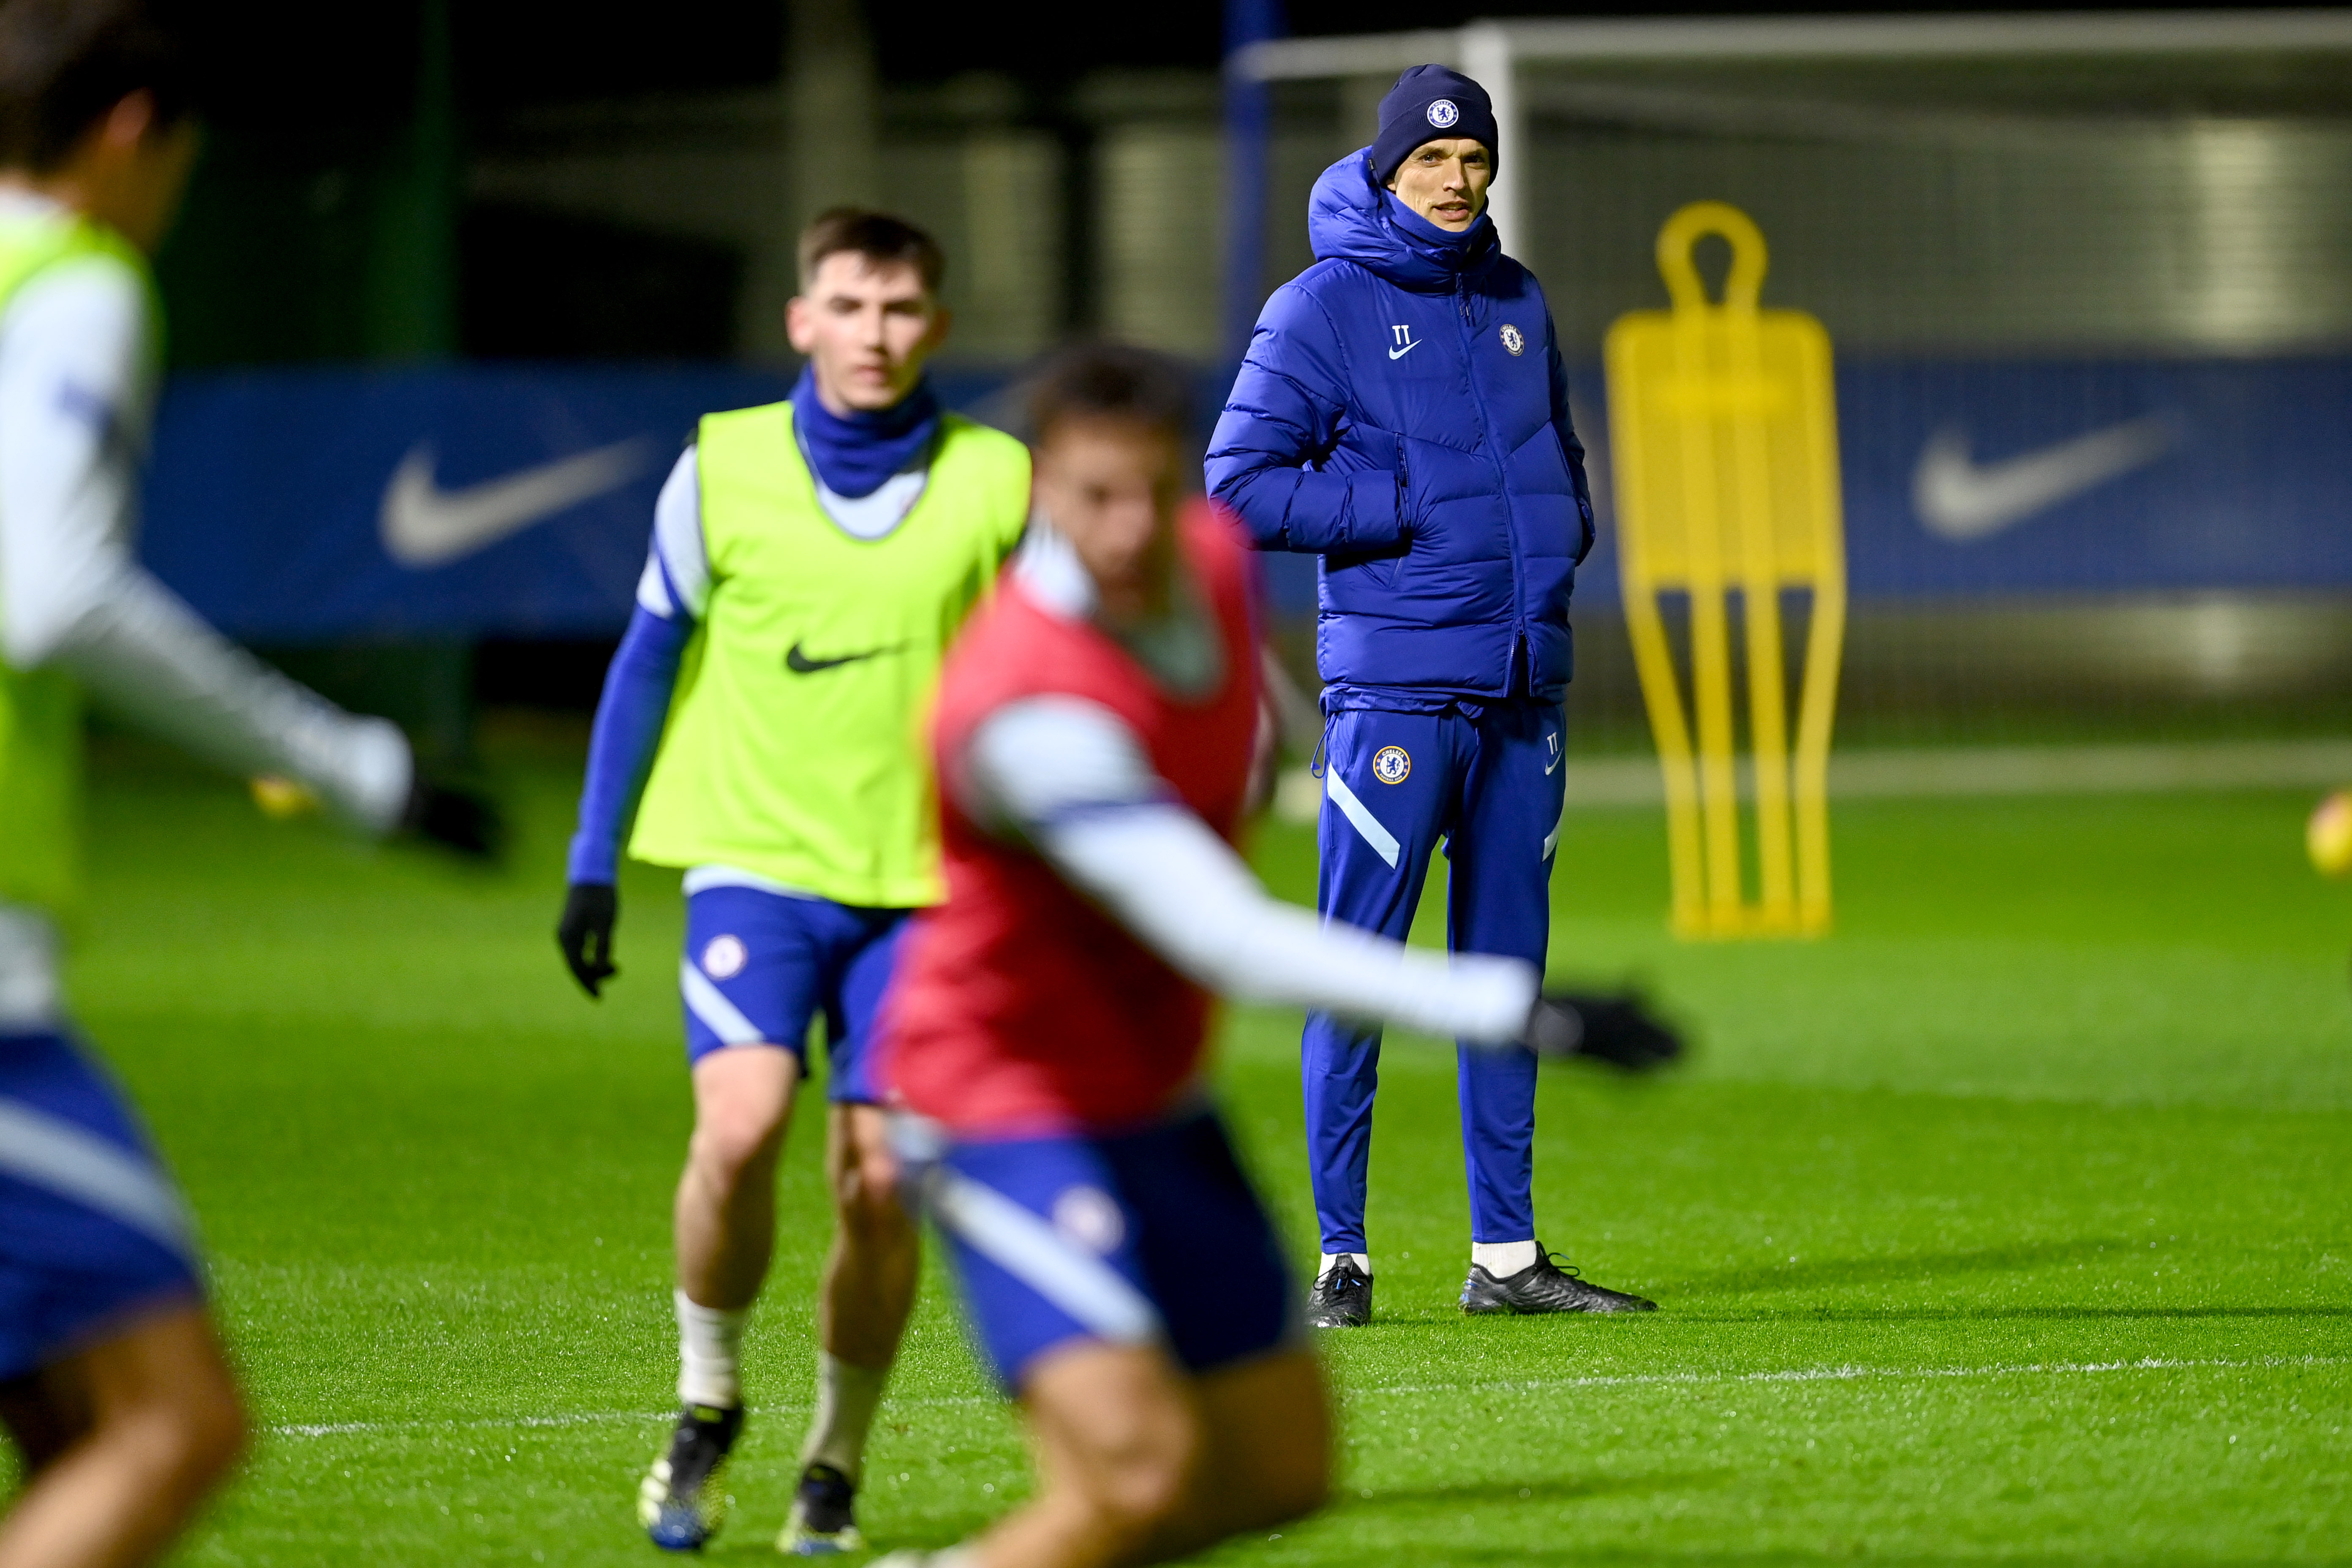 Thomas Tuchel - Chelsea Training and Press Conference